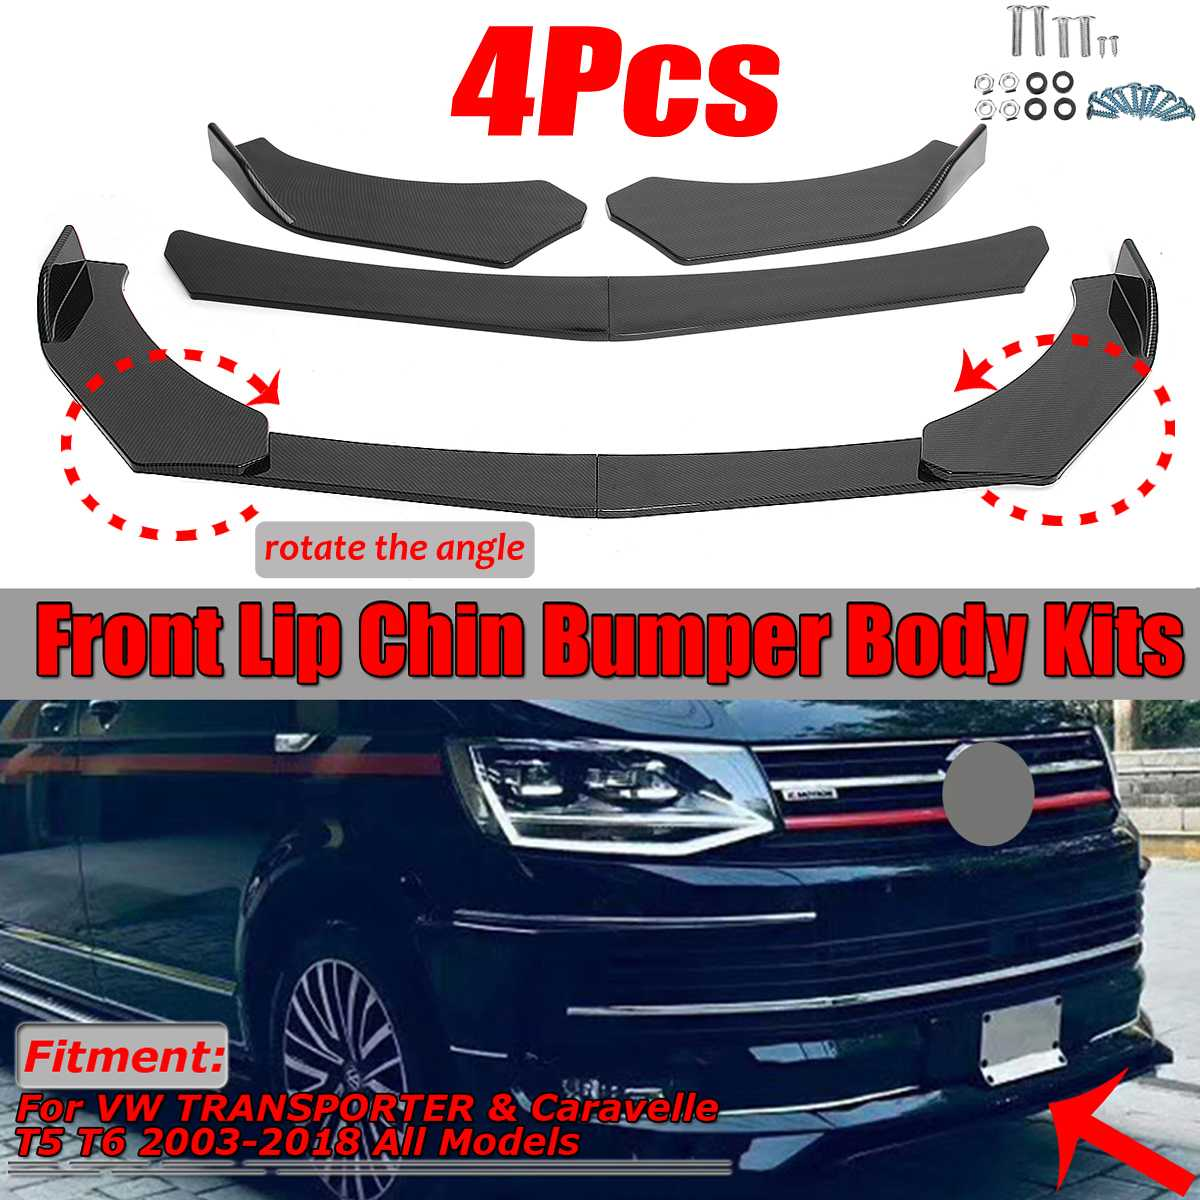 4PCS Universal Car Front Bumper Splitter Lip Diffuser Chin Bumper Body Kits For Benz For BMW For Honda For Ford For Audi